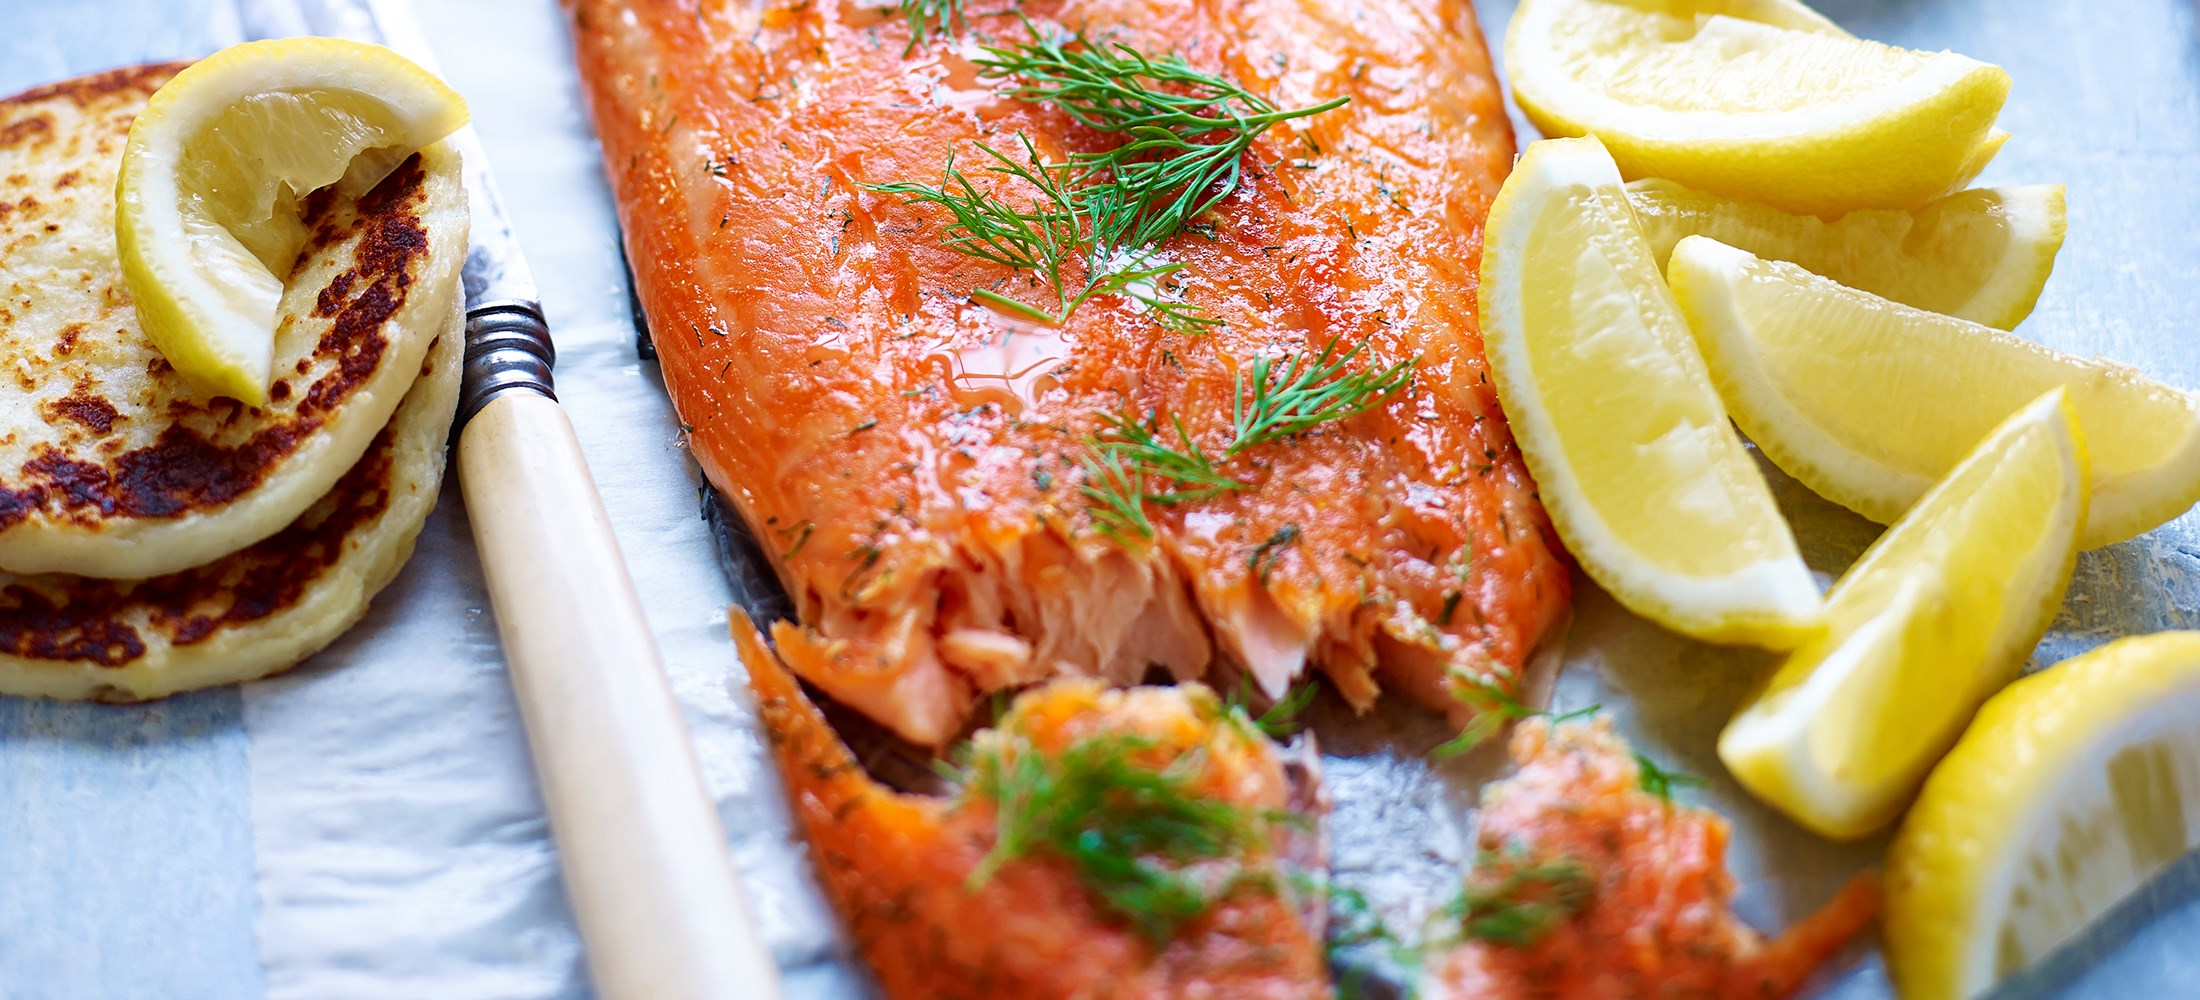 14 Best Ever Healthy Fish Recipes Under 300 Calories